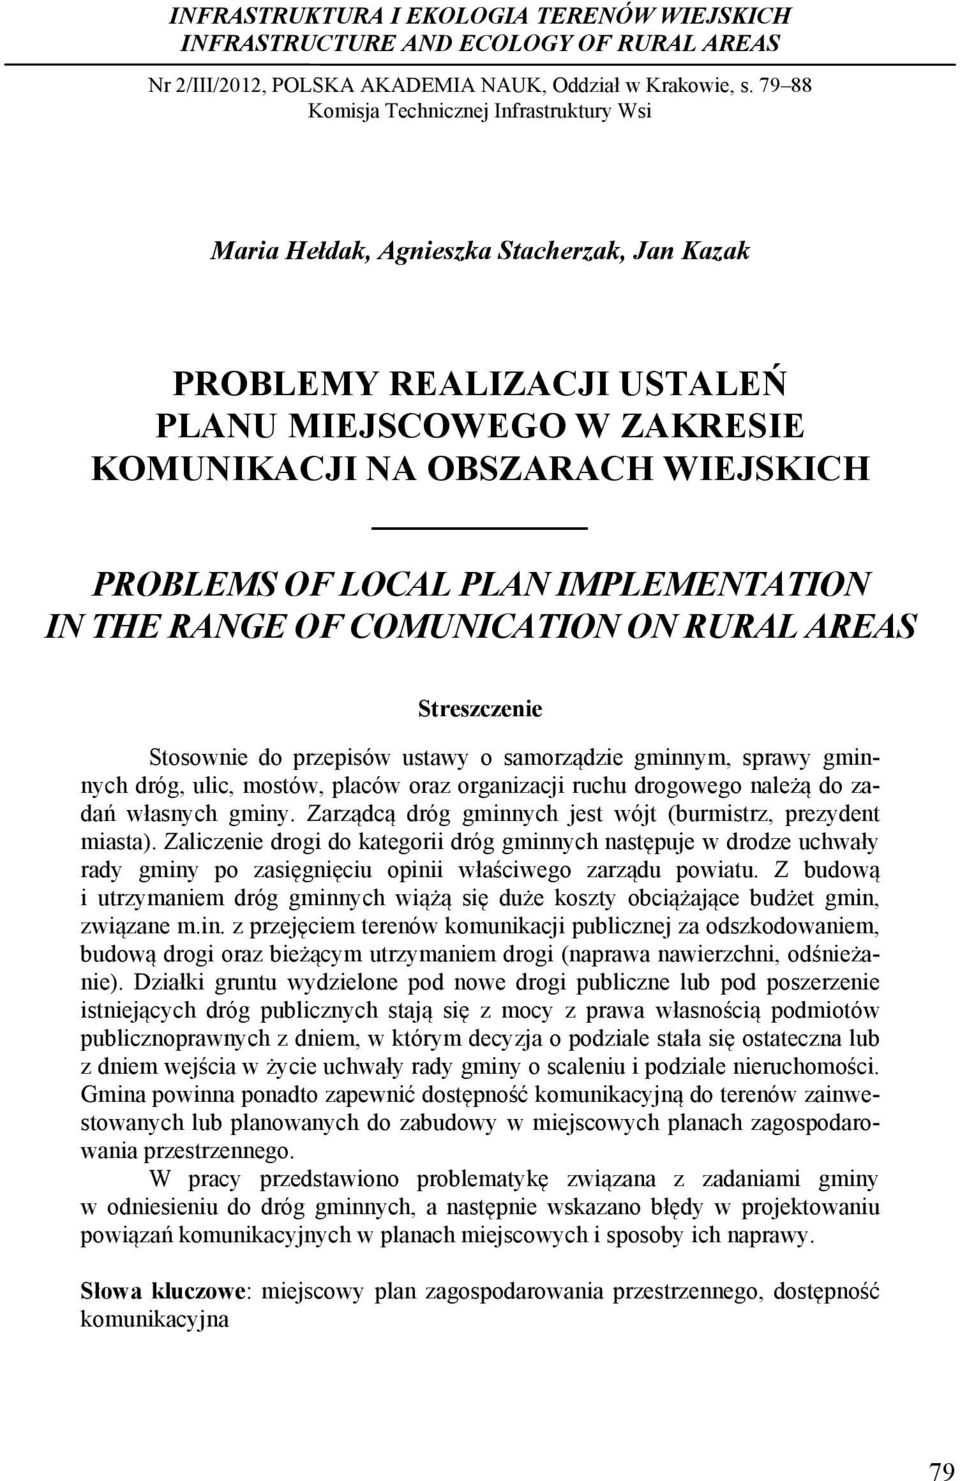 .. Maria Hełdak, Agnieszka Stacherzak, Jan Kazak PROBLEMY REALIZACJI USTALEŃ PLANU MIEJSCOWEGO W ZAKRESIE KOMUNIKACJI NA OBSZARACH WIEJSKICH PROBLEMS OF LOCAL PLAN IMPLEMENTATION IN THE RANGE OF